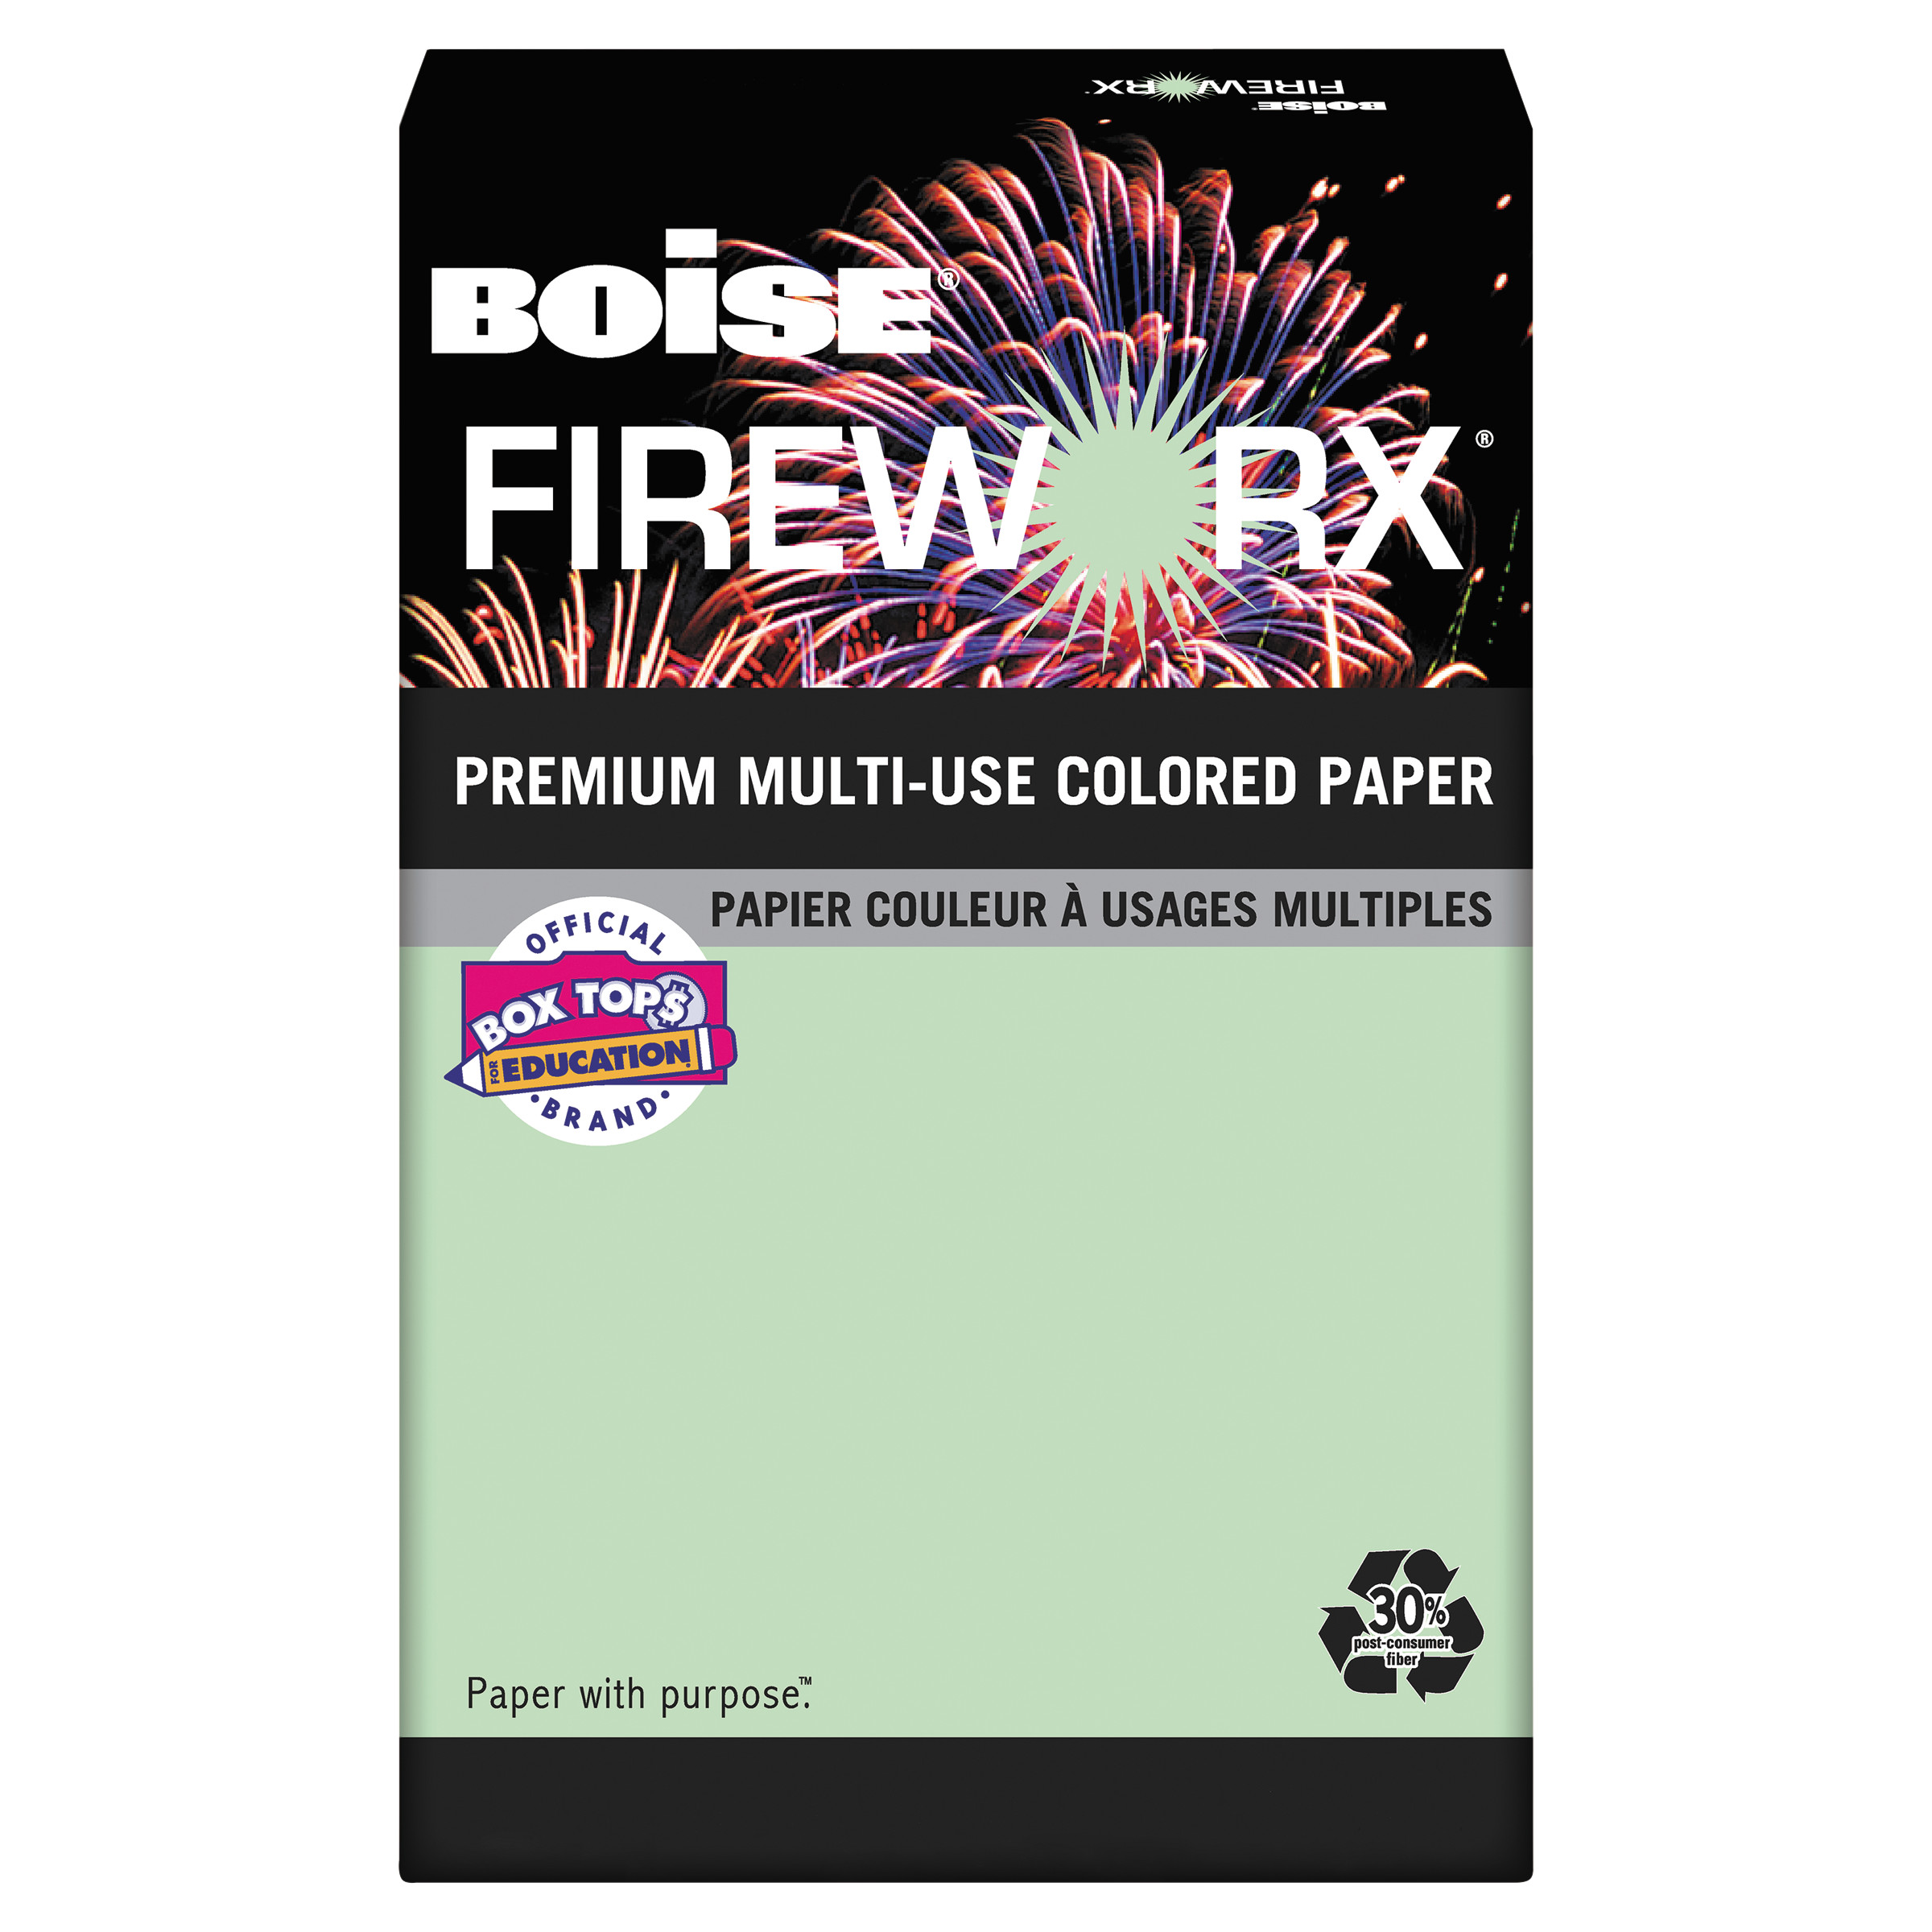 Boise FIREWORX Colored Paper, 24lb, 8-1/2 x 11, Popper-mint Green, 500 Sheets/Ream -CASMP2241GN